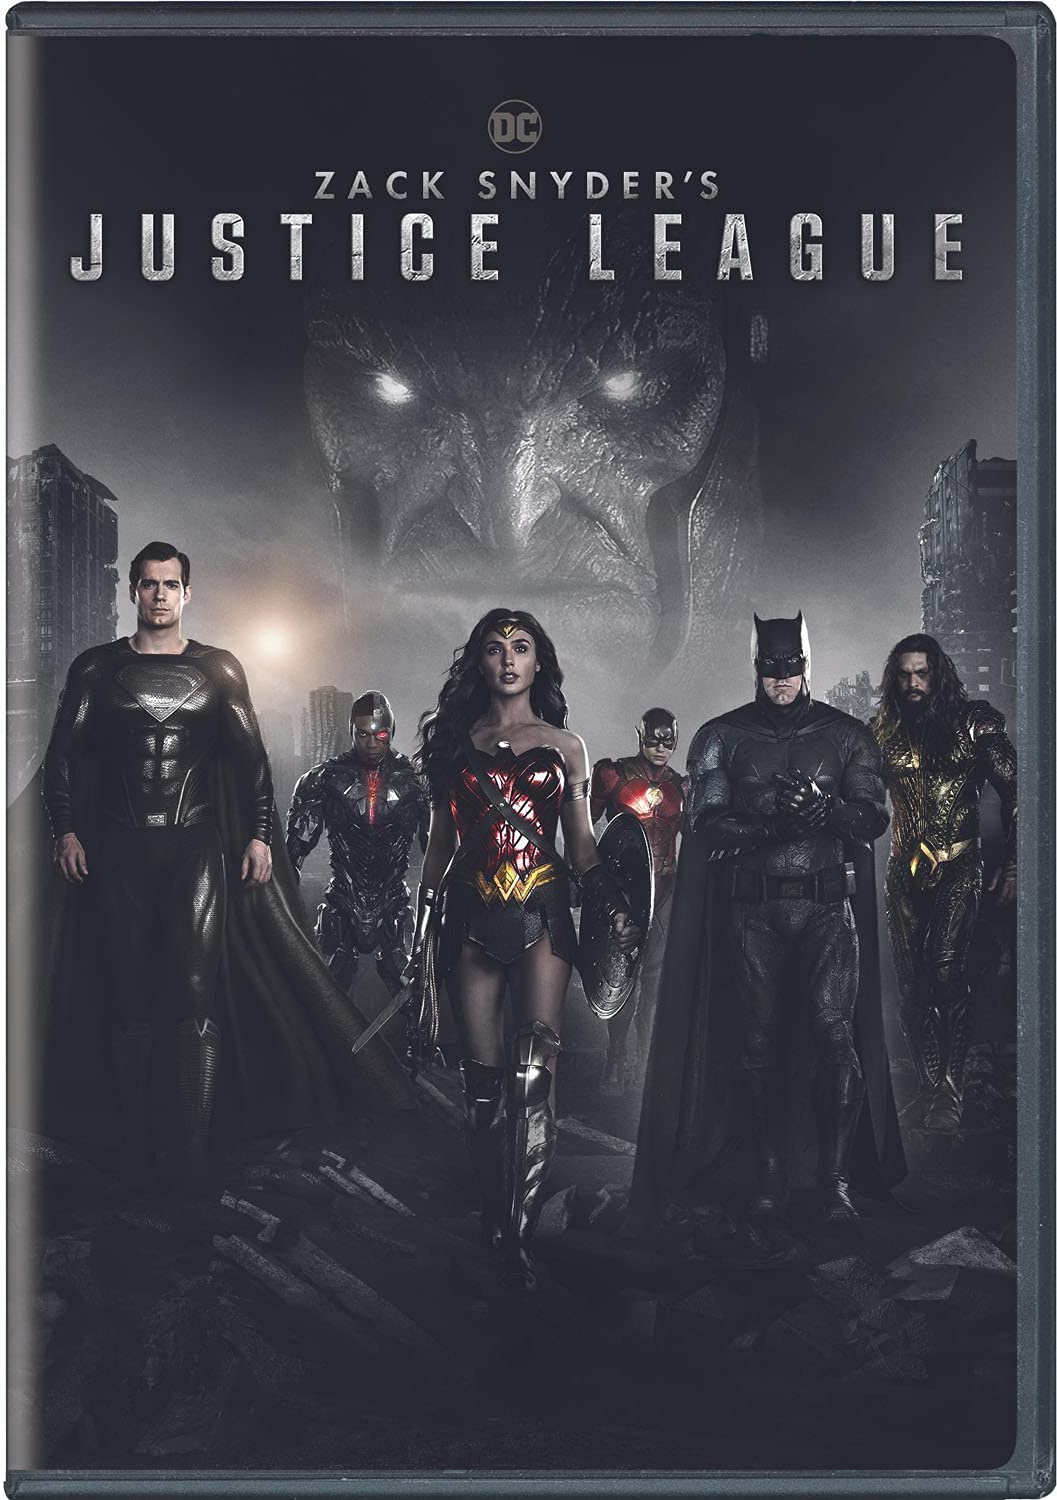 Zack-Snyder's-Justice-League-(DVD)